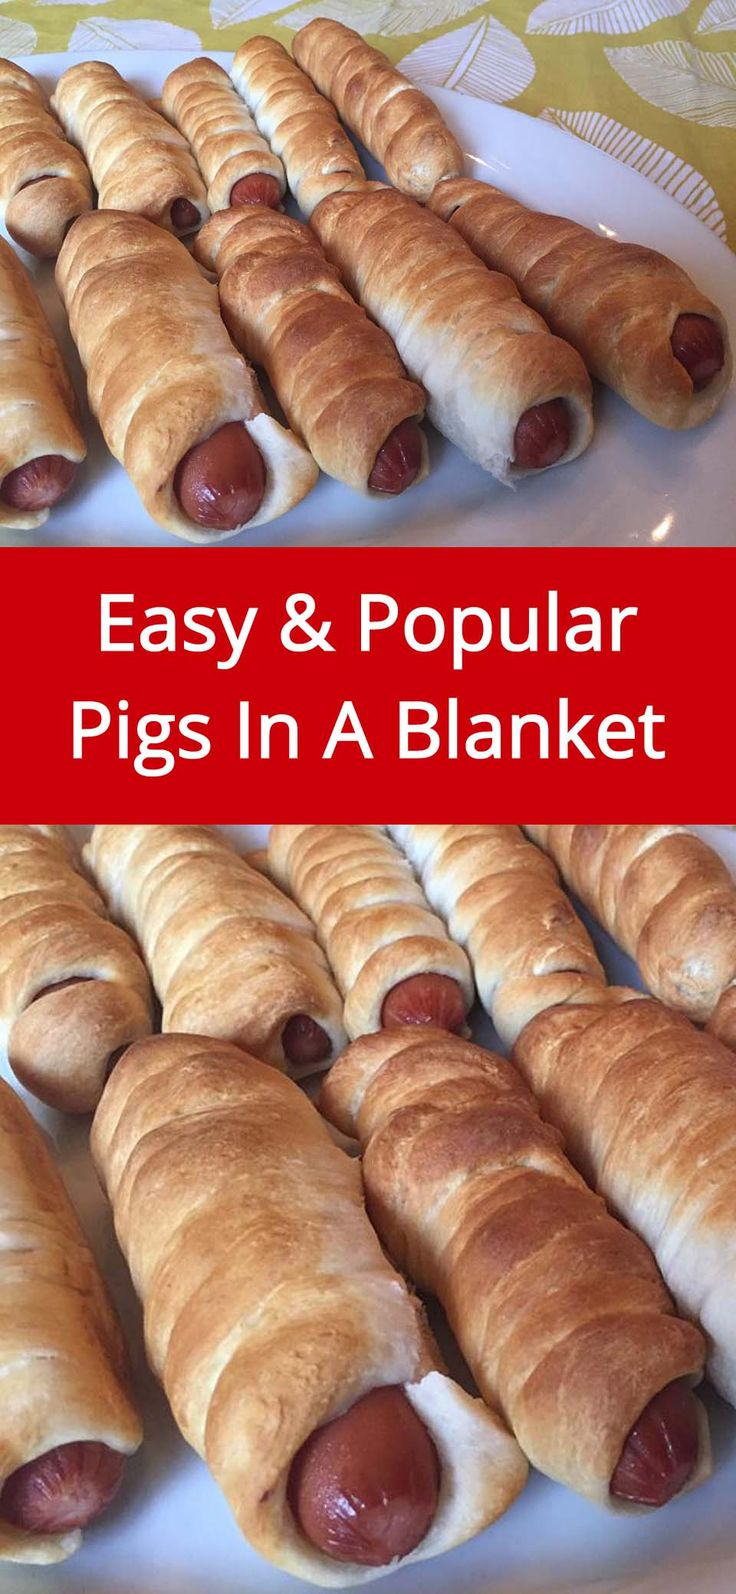 Pigs In A Blanket Recipe - super easy and everyone loves them! | MelanieCooks.com